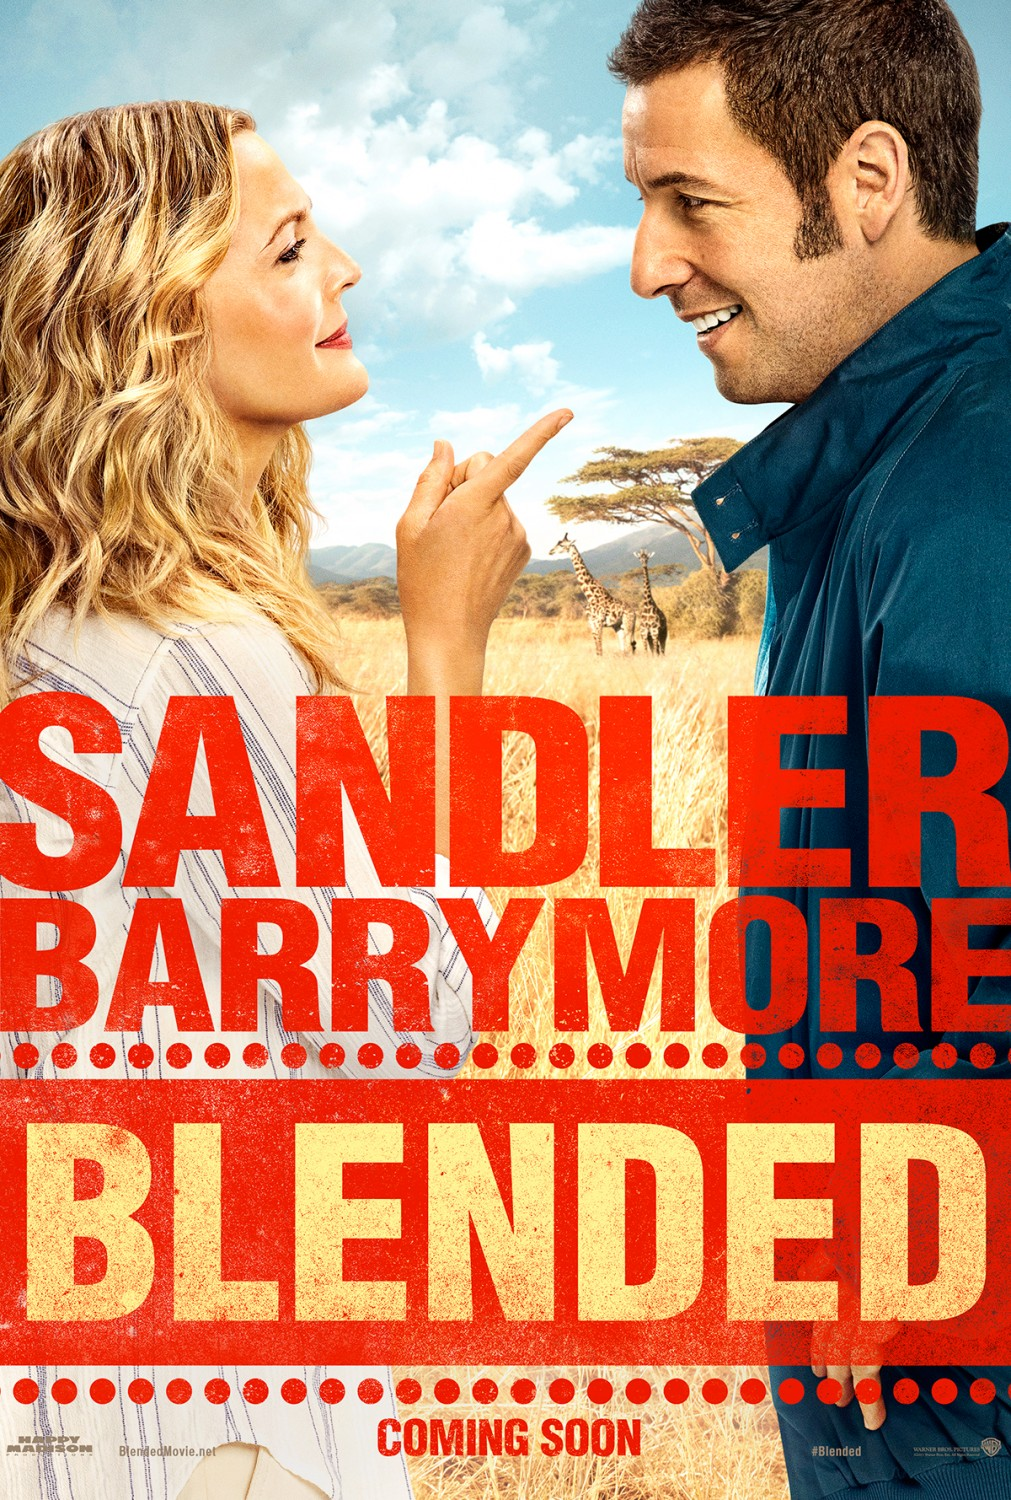 Blended tráiler: Sandler y Barrymore again.